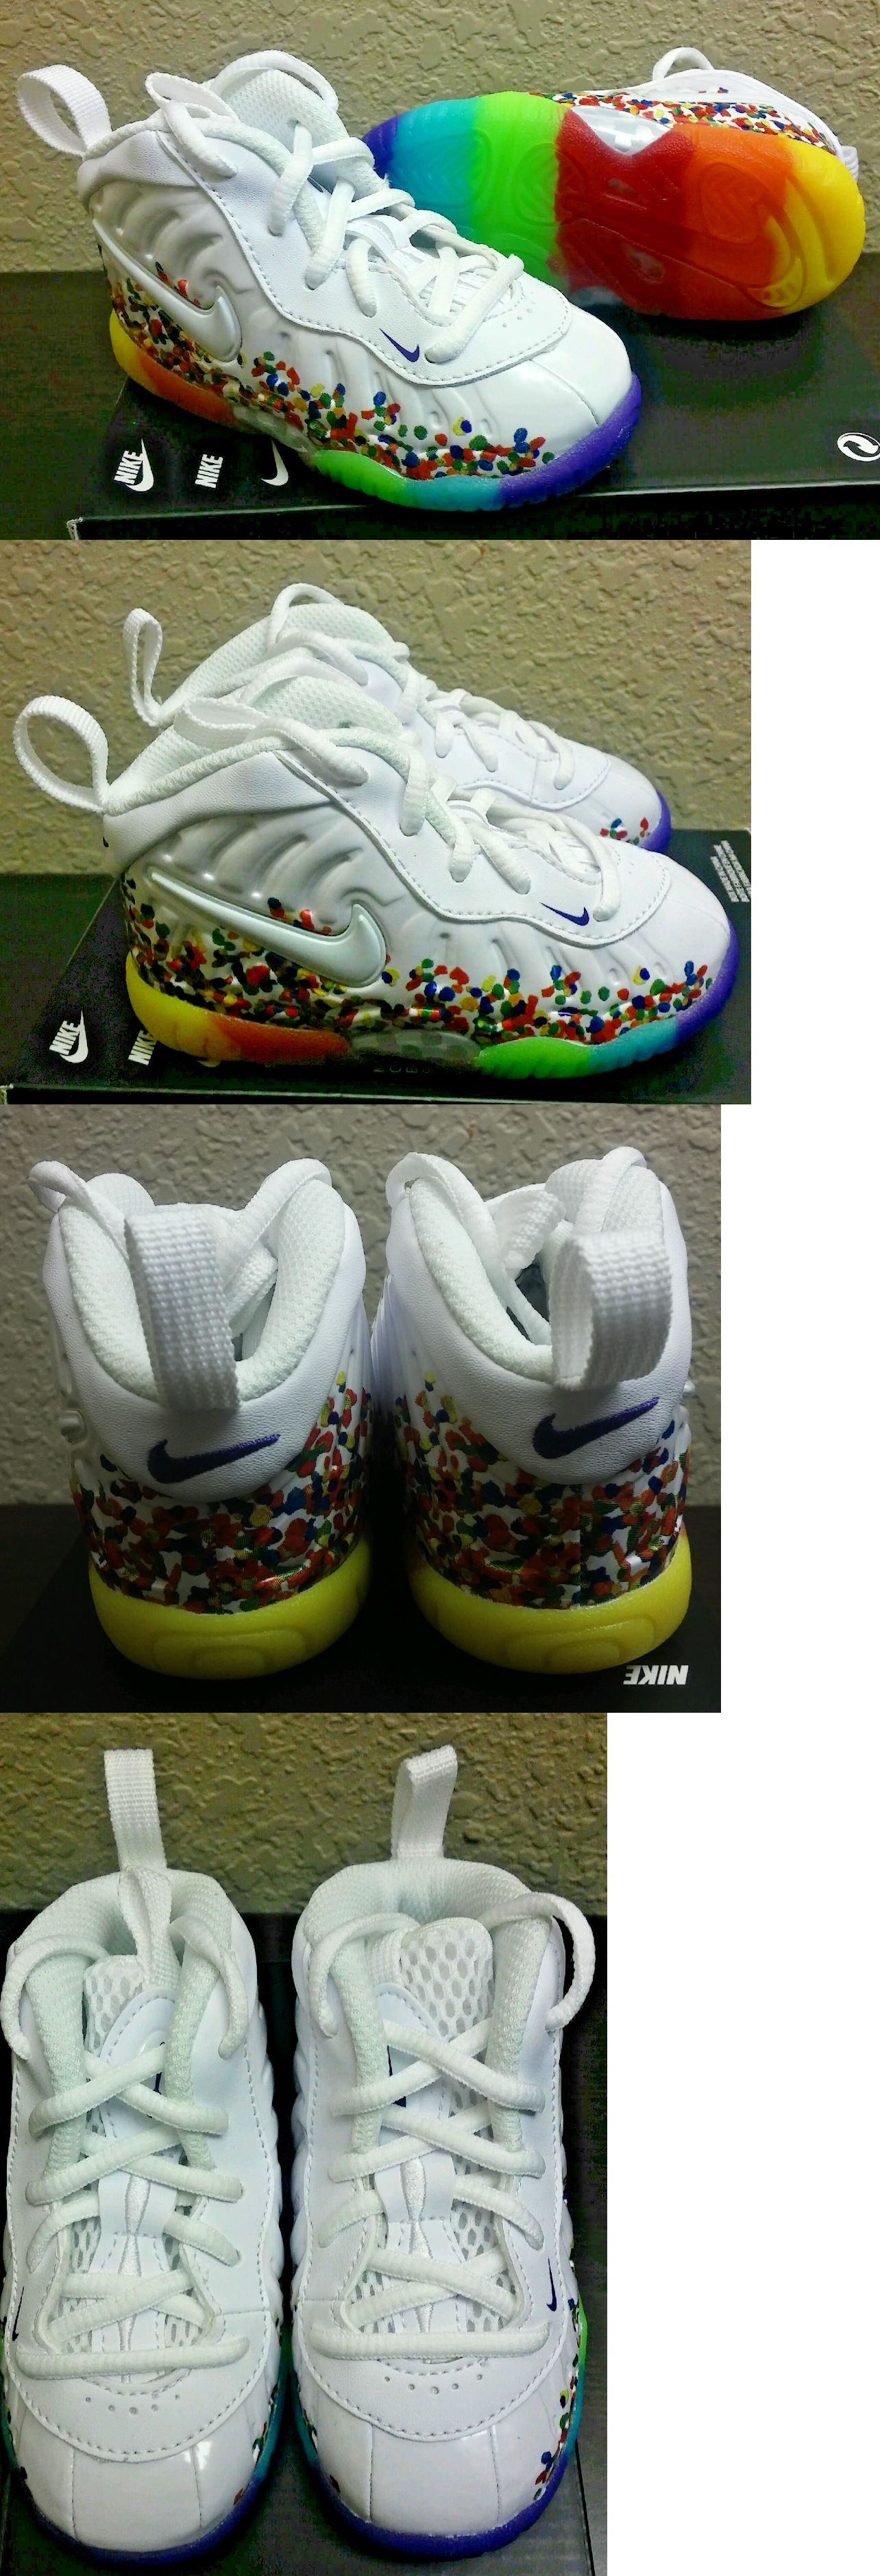 Baby Shoes 147285: Nike Little Posite Pro Fruity Pebbles White Baby Toddler  Foamposite 843769 101